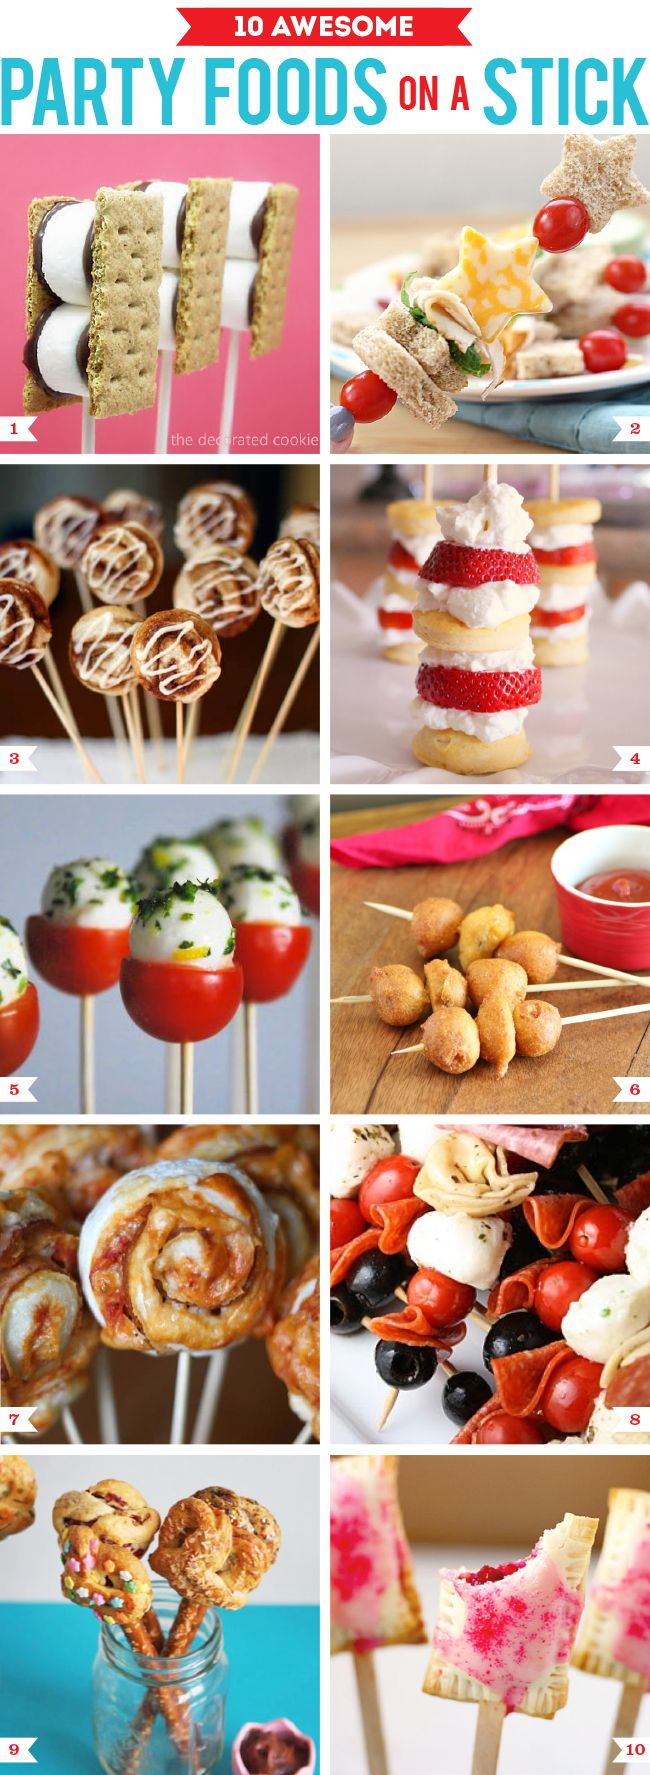 Because food is better when it comes on a stick #tophatandlace